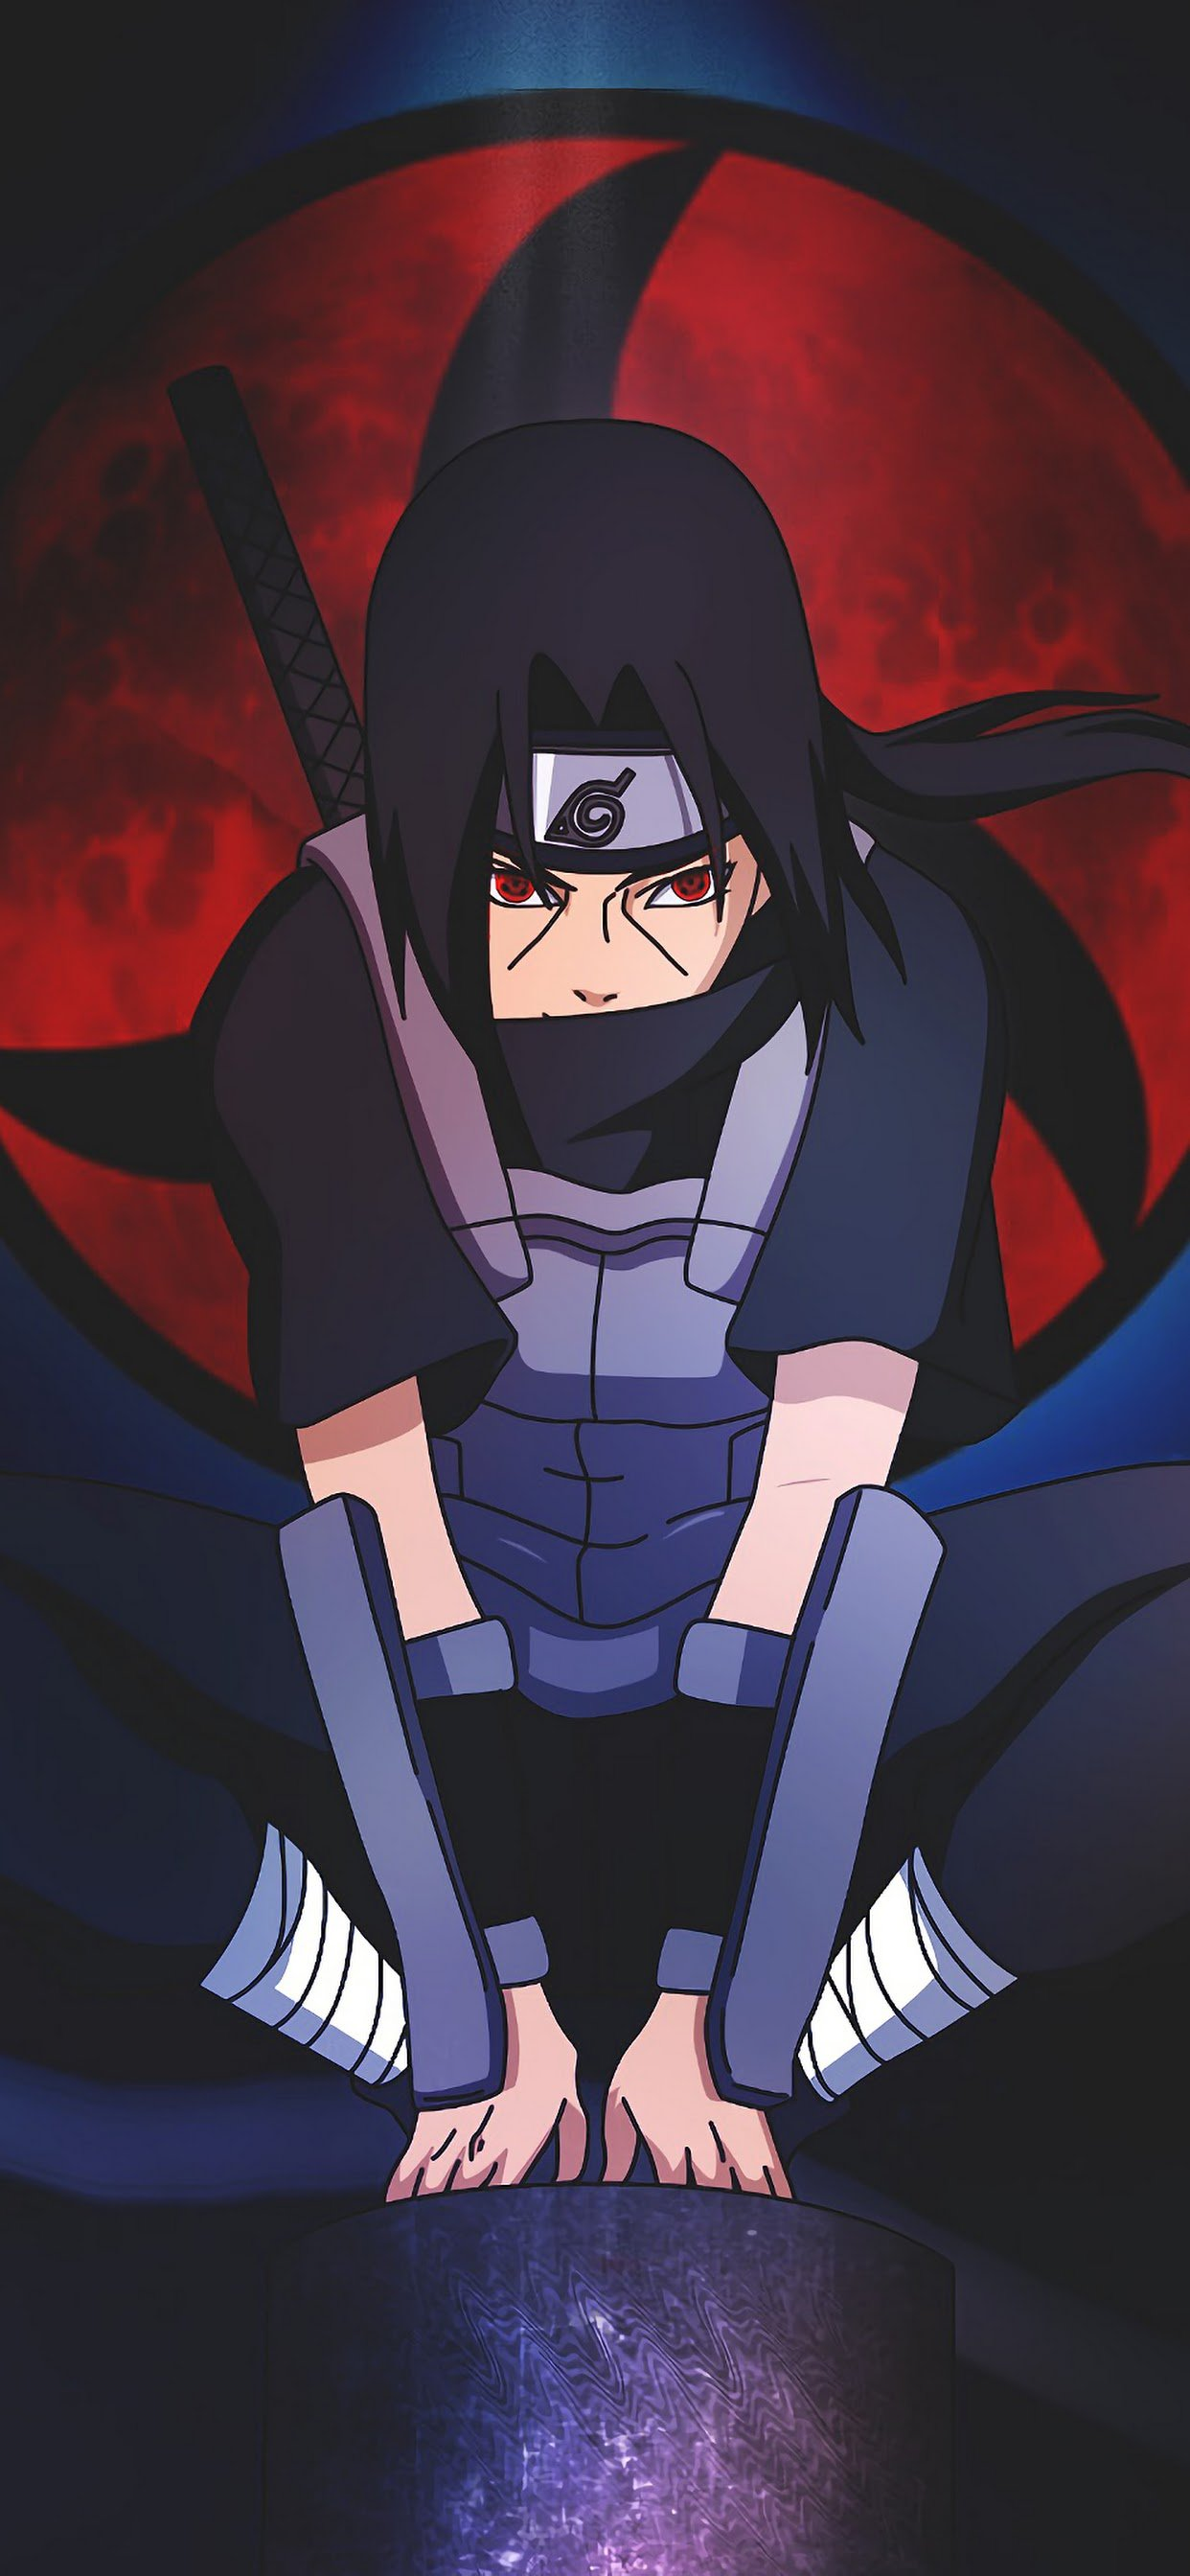 Itachi Sharingan Anbu 4K Wallpaper 6 1242x2688